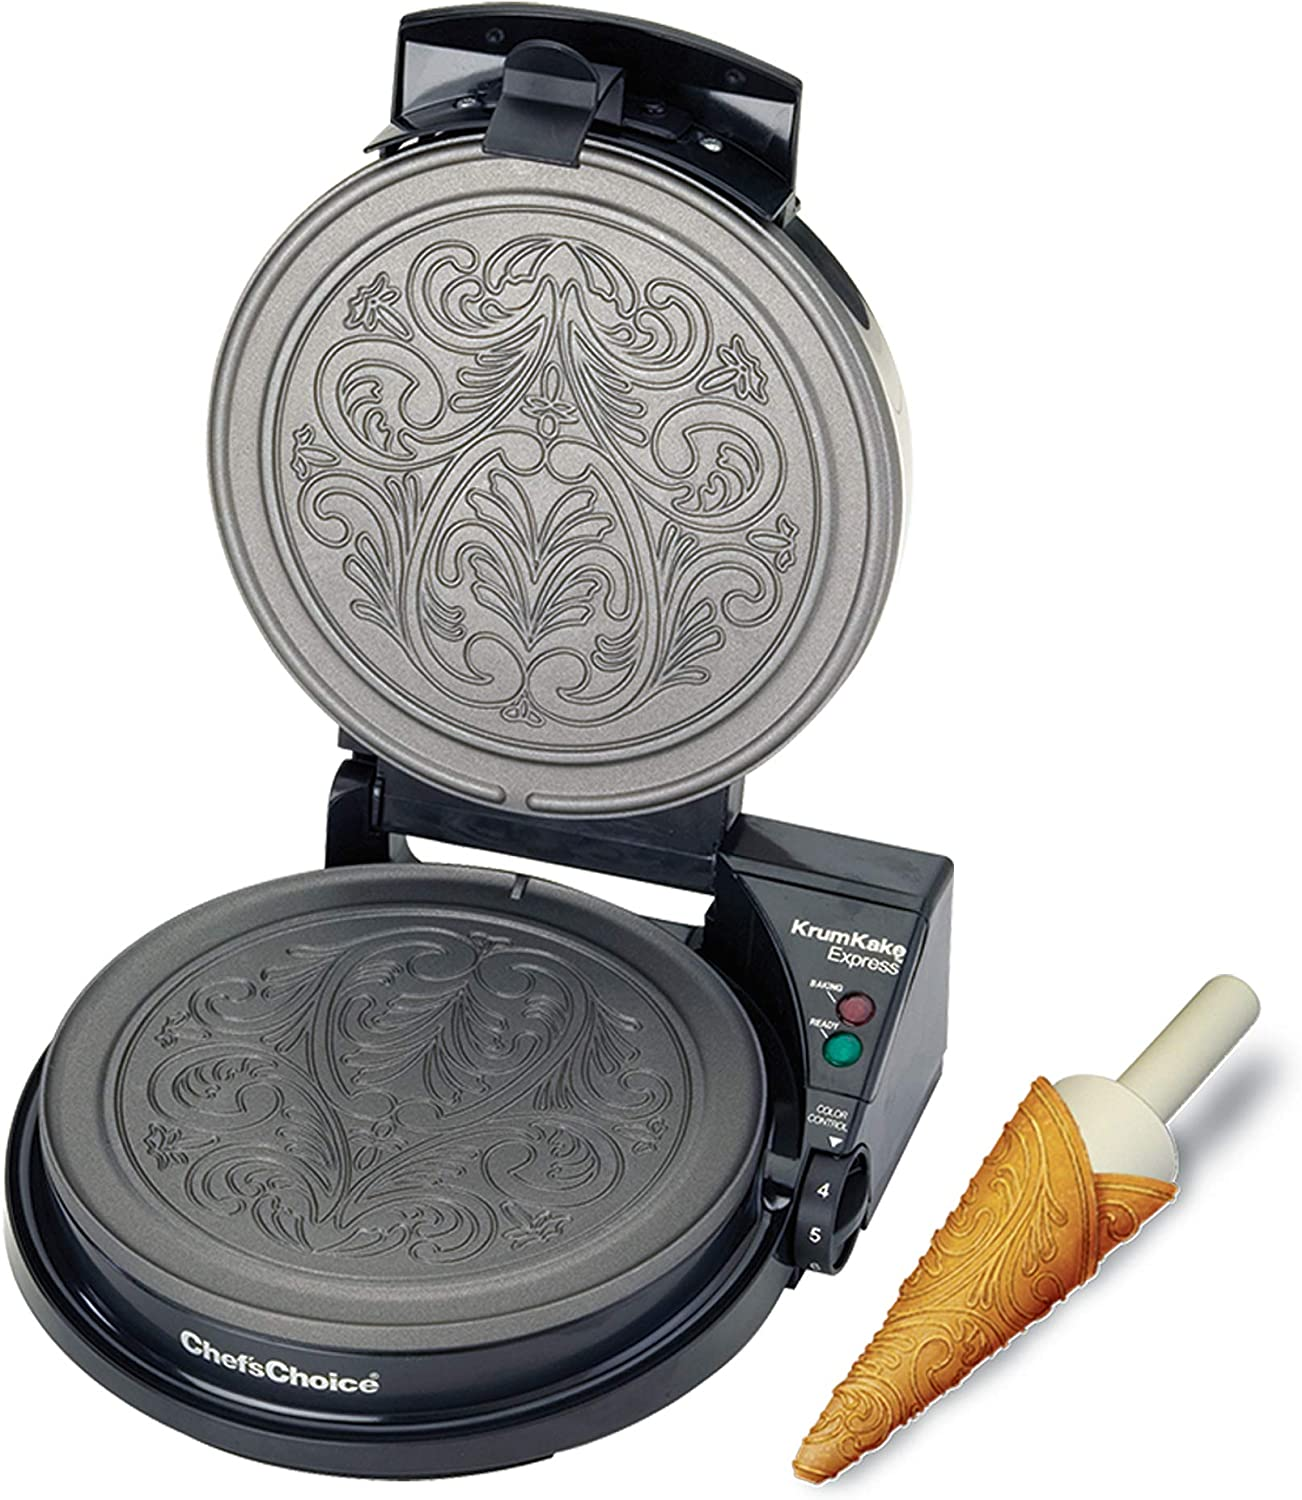 Chef'sChoice KrumKake Express Model 839